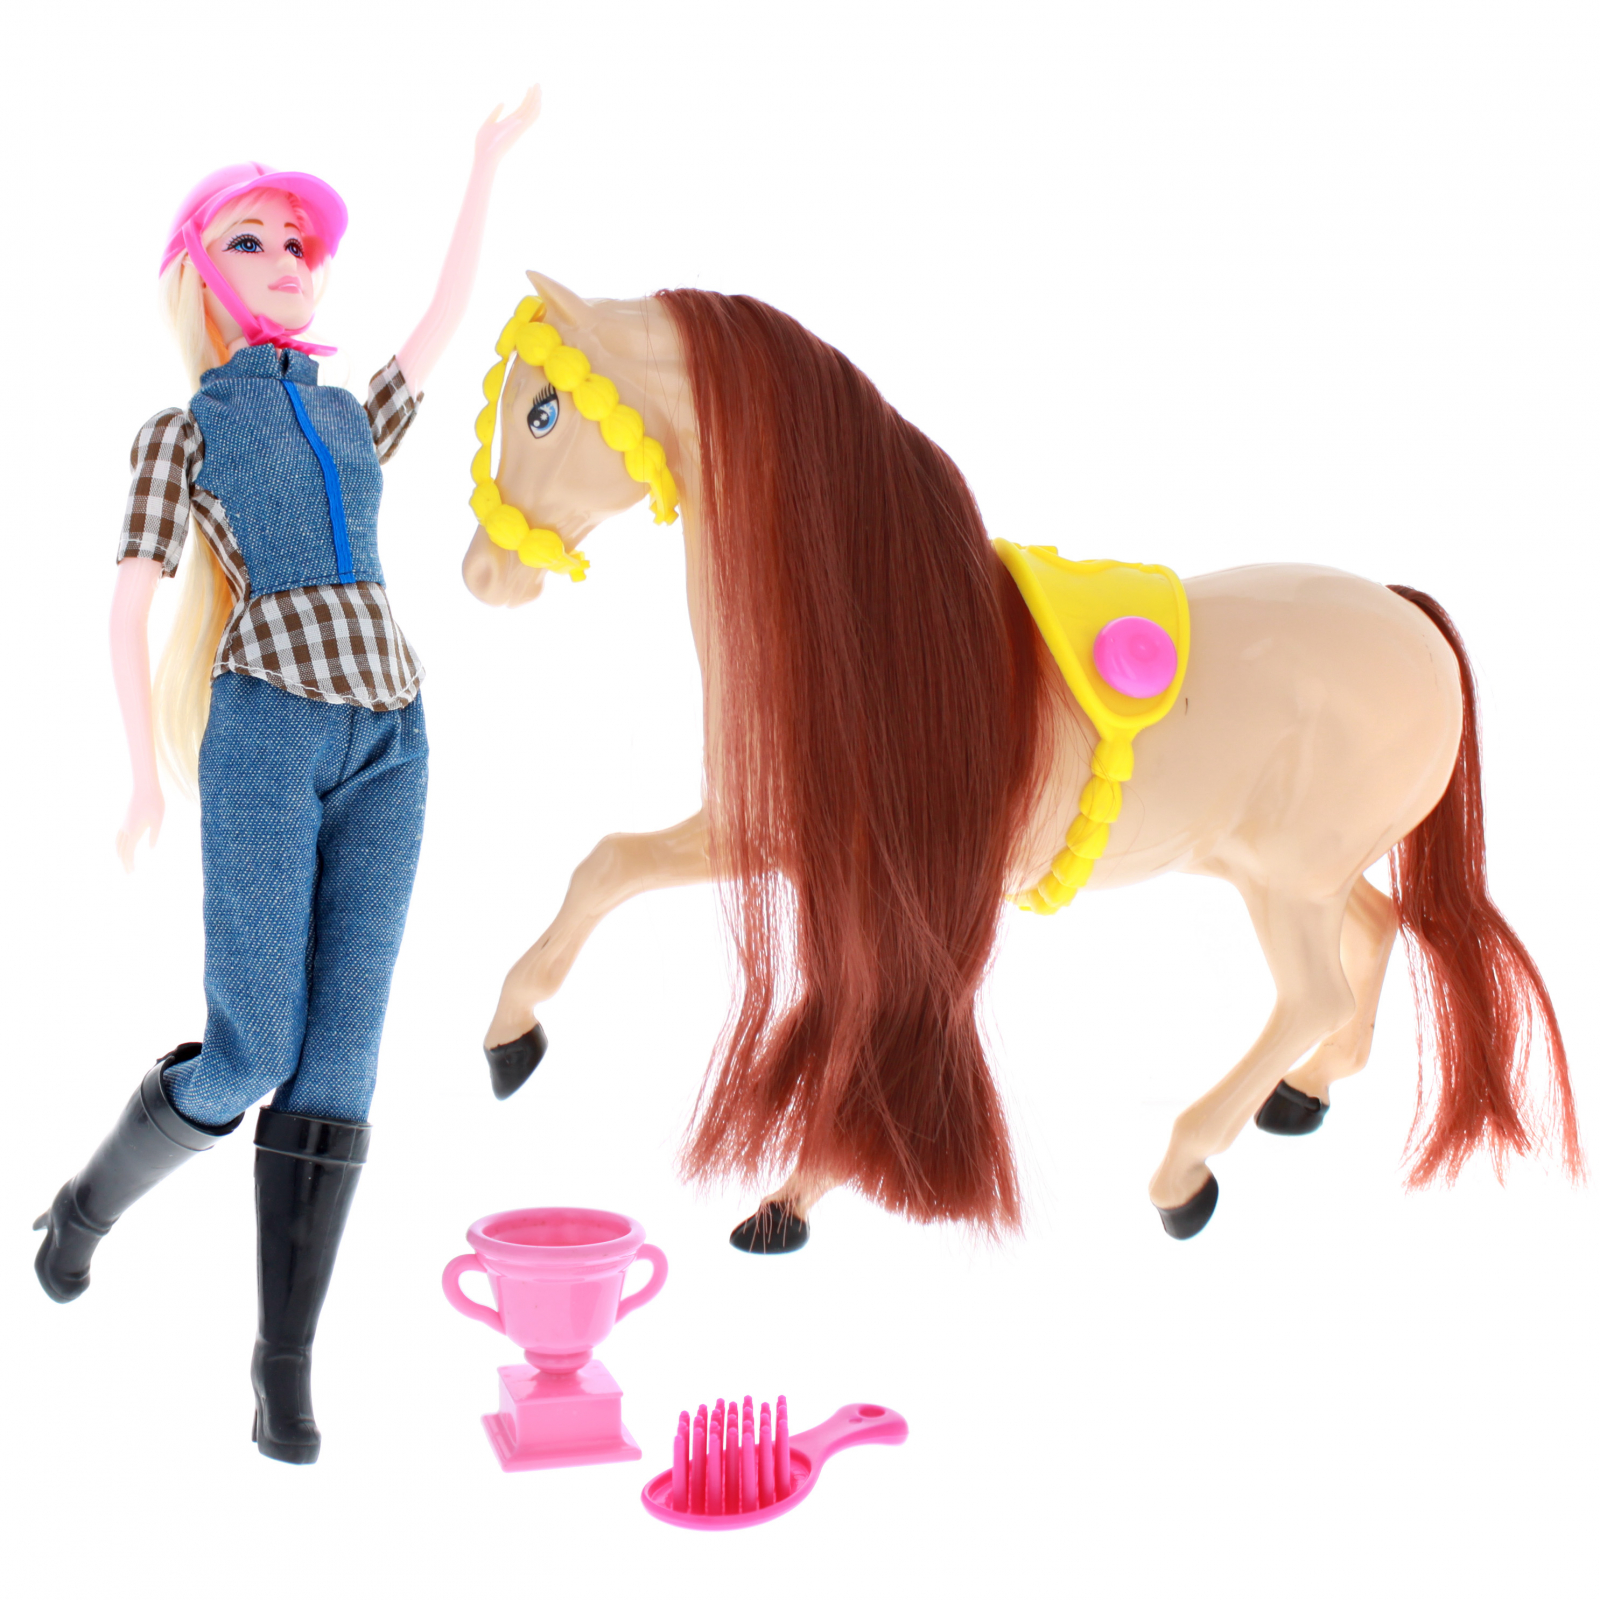 Blonde Doll and Brown Horse Show Play Set With Accessories